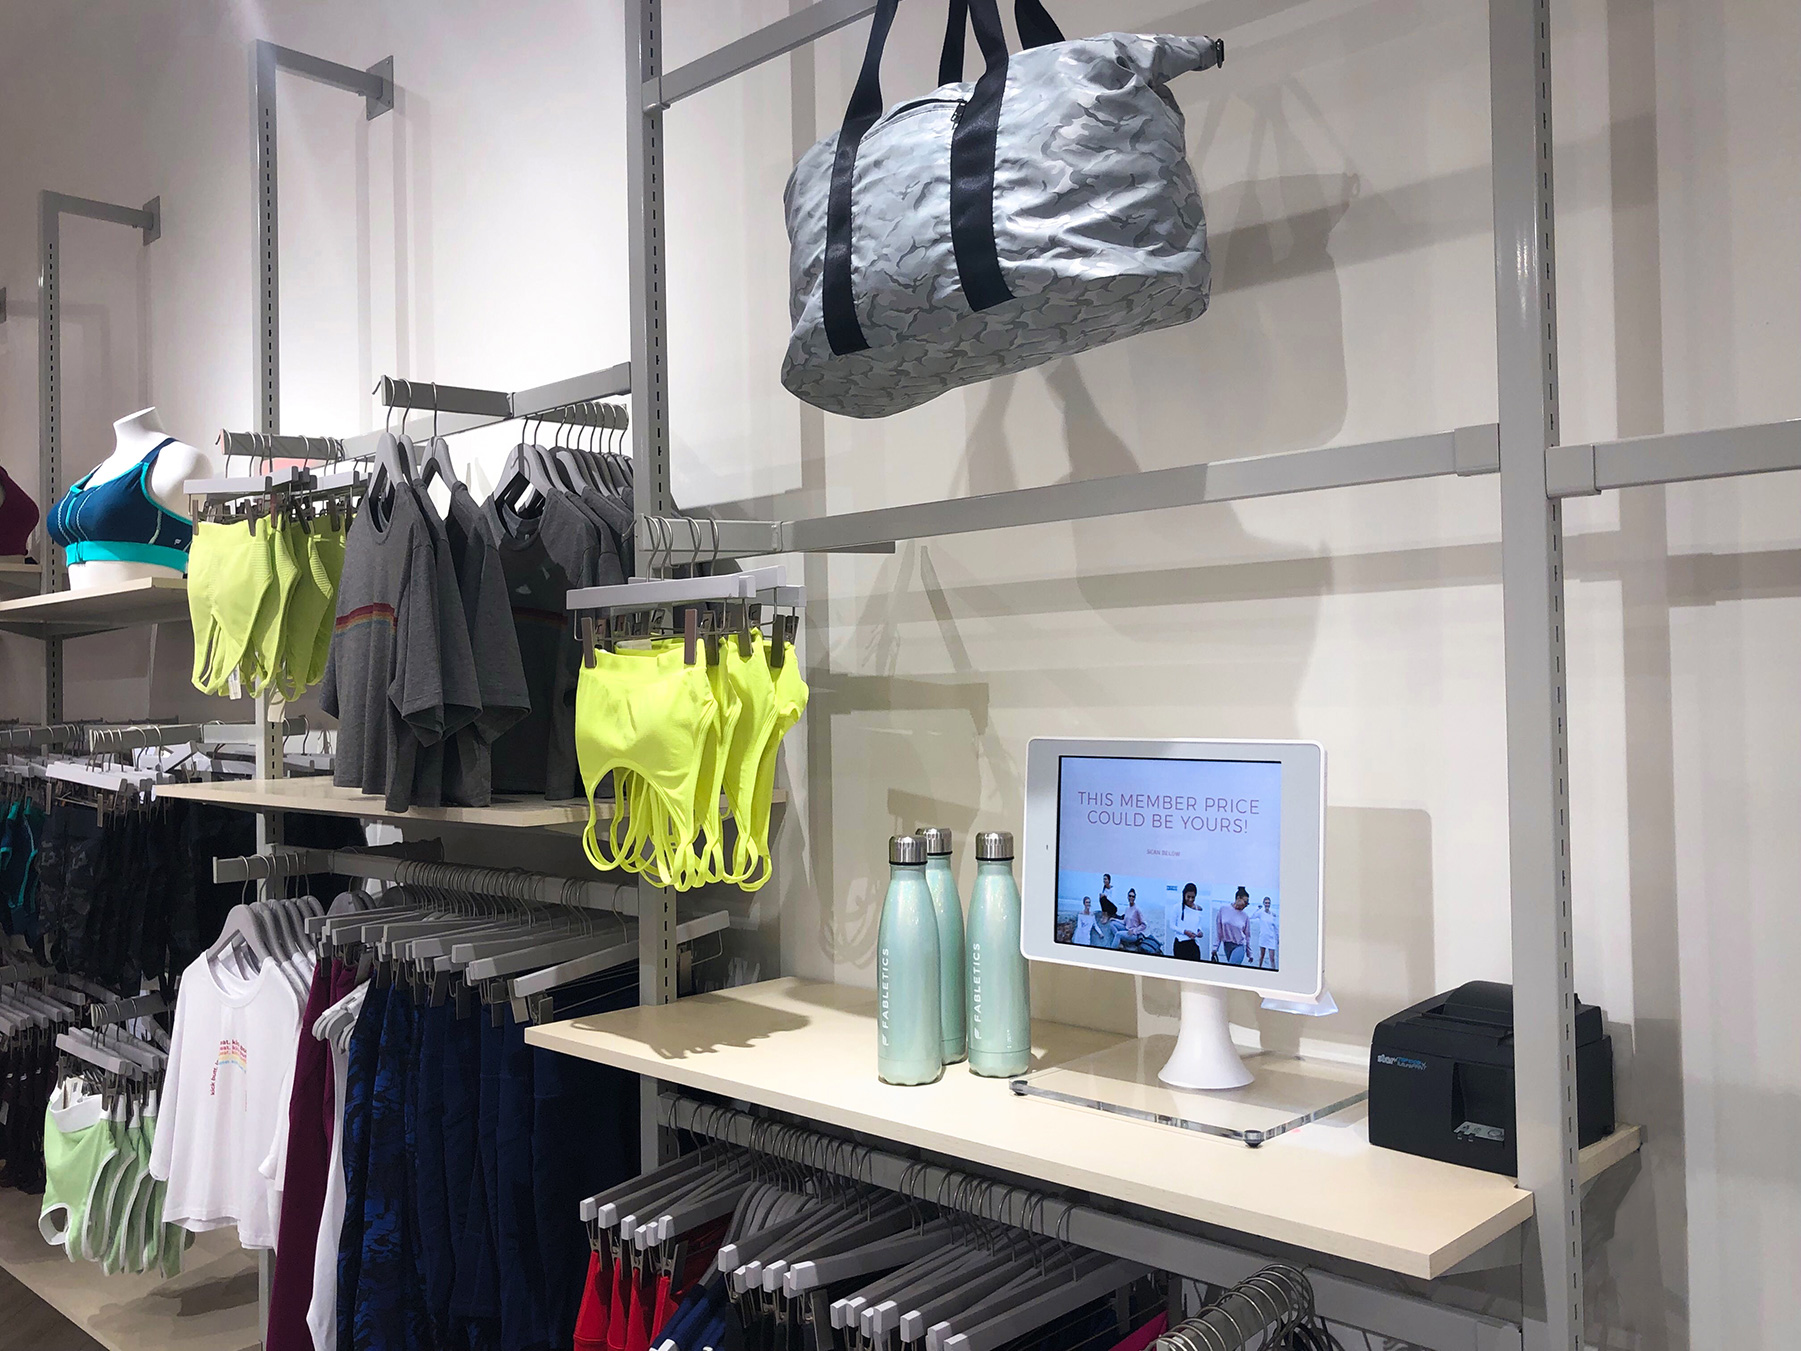 Aila-Interactive-Kiosk-Price-checking-product-discovery-Fabletics